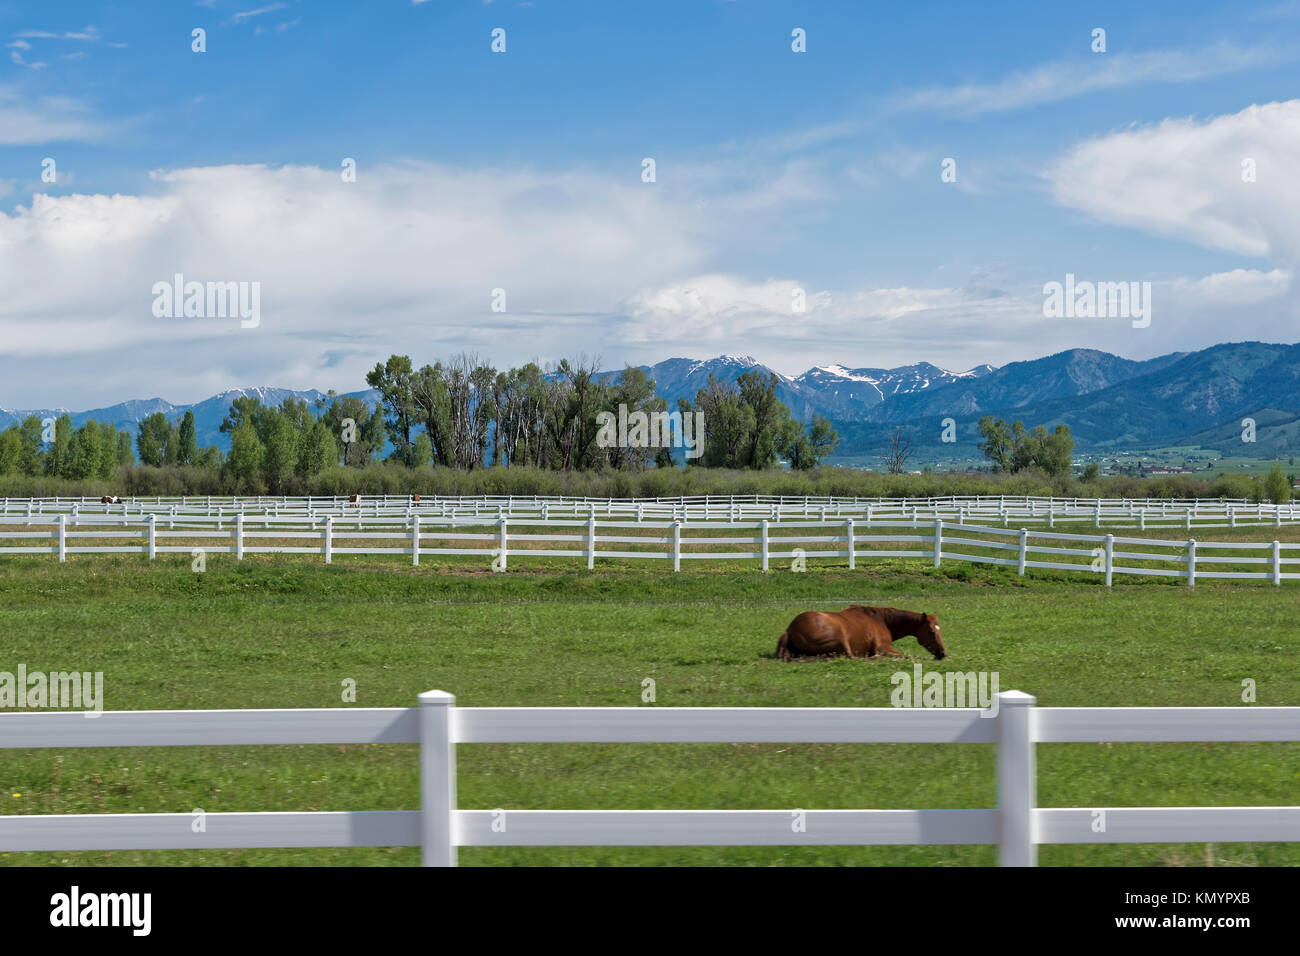 White wooden fence for the keeping of horses in Wyoming. Bay horse. - Stock Image